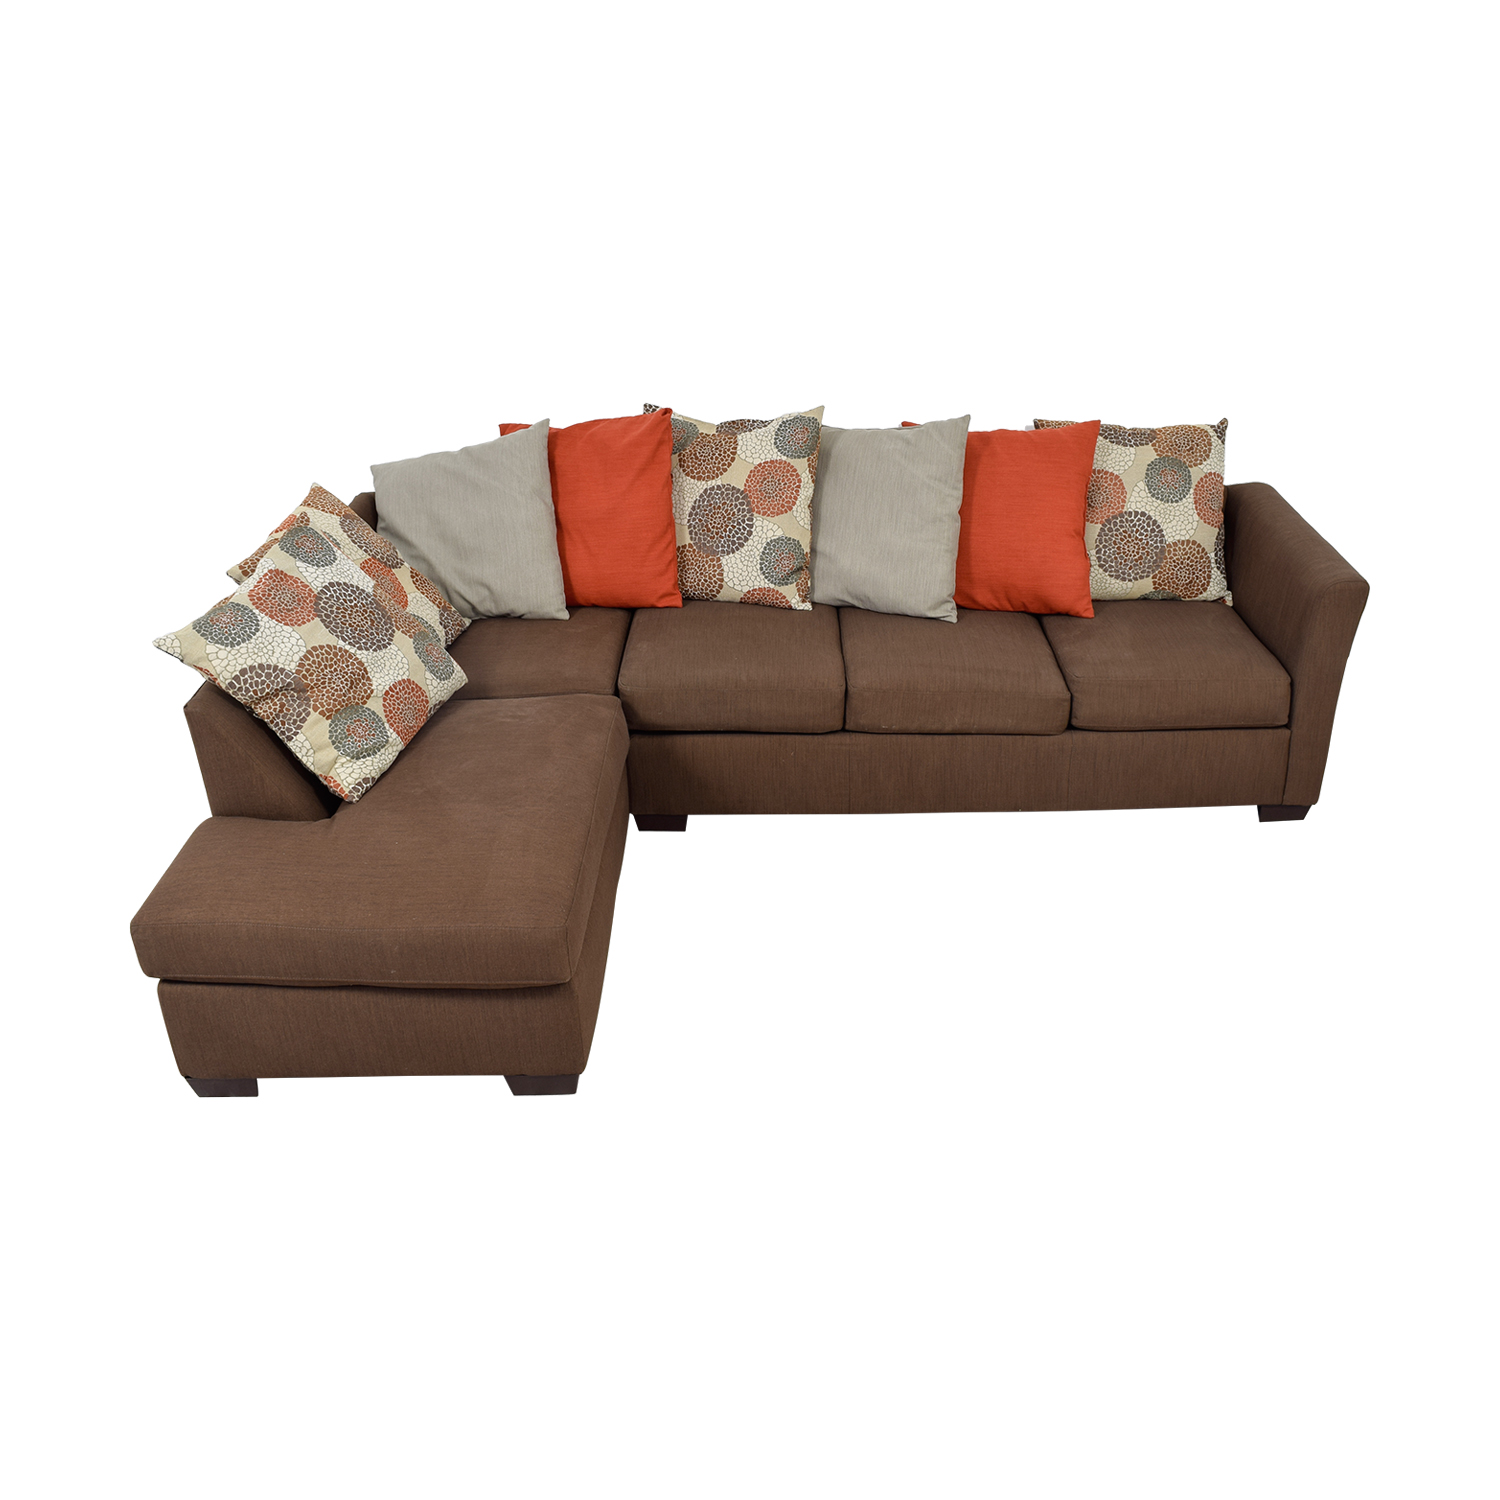 shop TriState Furniture Sectional Sofa TriState Furniture Sectionals